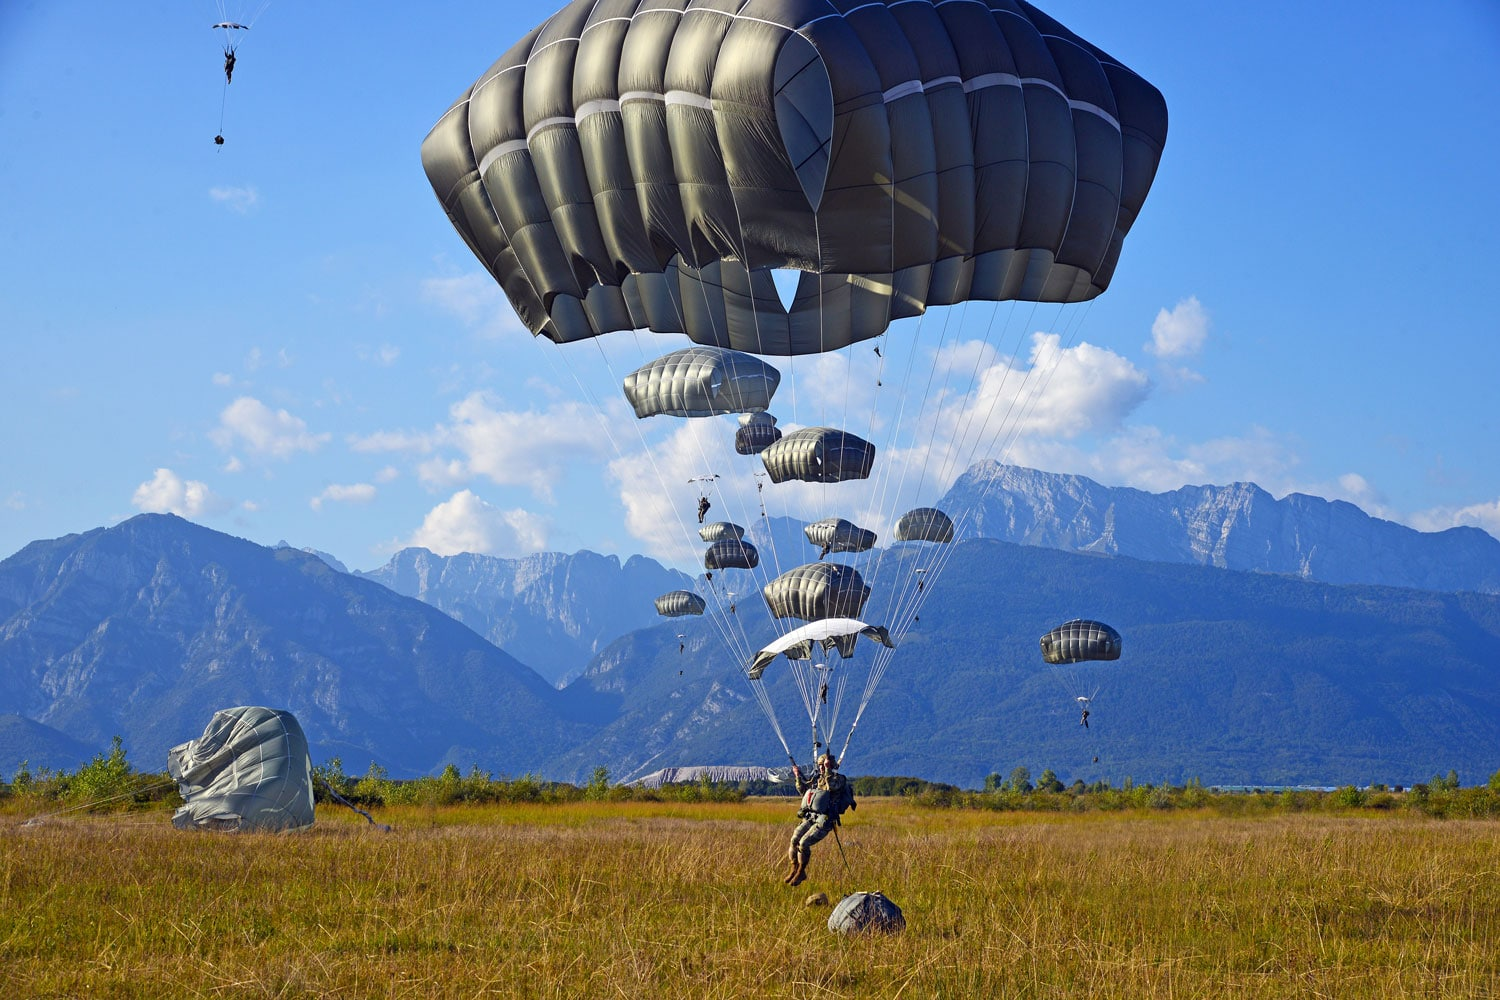 U.S. Army Paratroopers assigned to the 173rd Brigade Support Battalion, 173rd Airborne Brigade, prepare to land after exiting a U.S. Air Force 86th Air Wing C-130 Hercules aircraft during airborne operations at Frida Drop Zone in Pordenone, Italy.